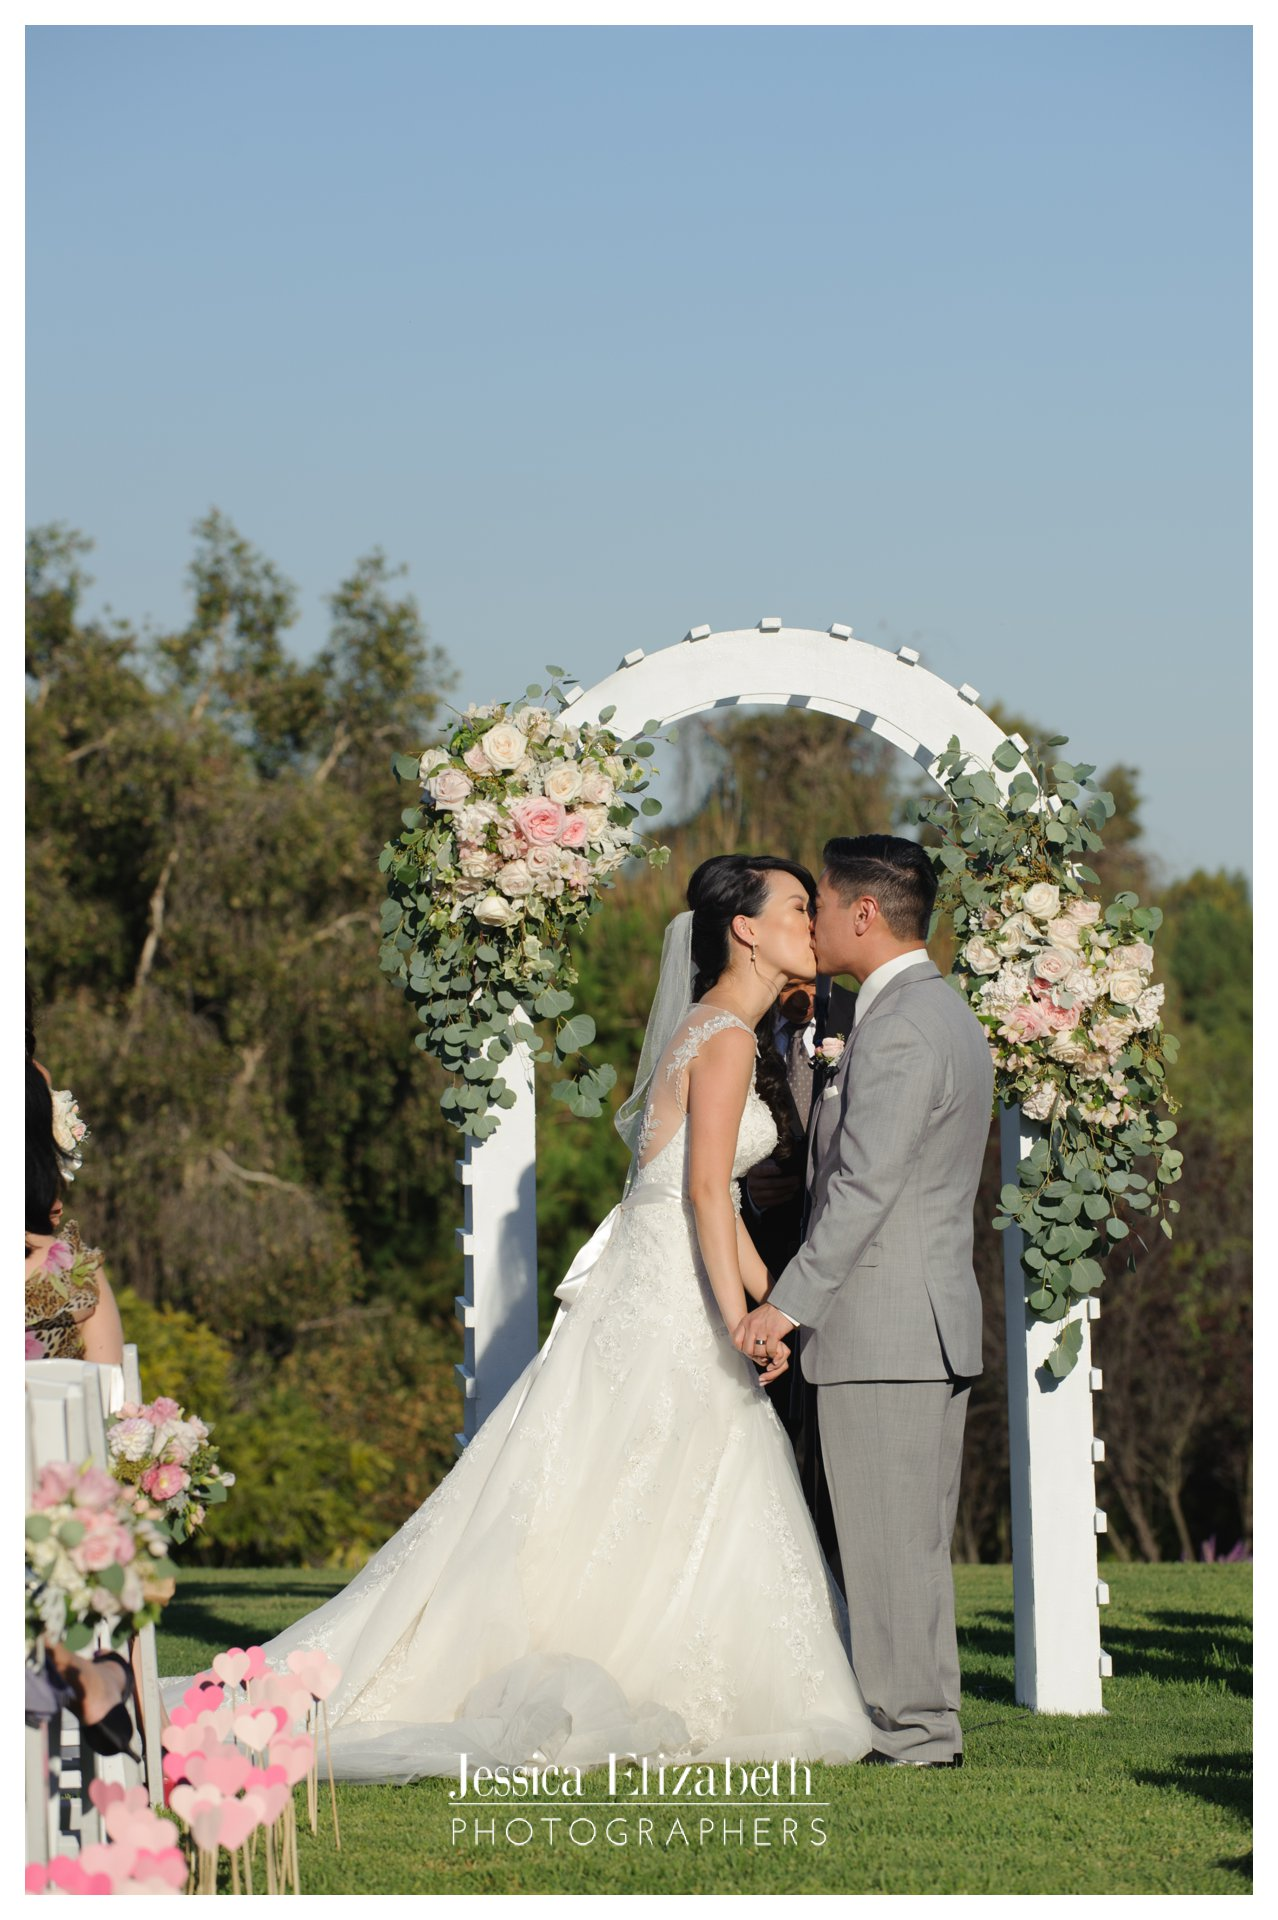 19-South Coast Botanic Garden Palos Verdes Wedding Photography by Jessica Elizabeth